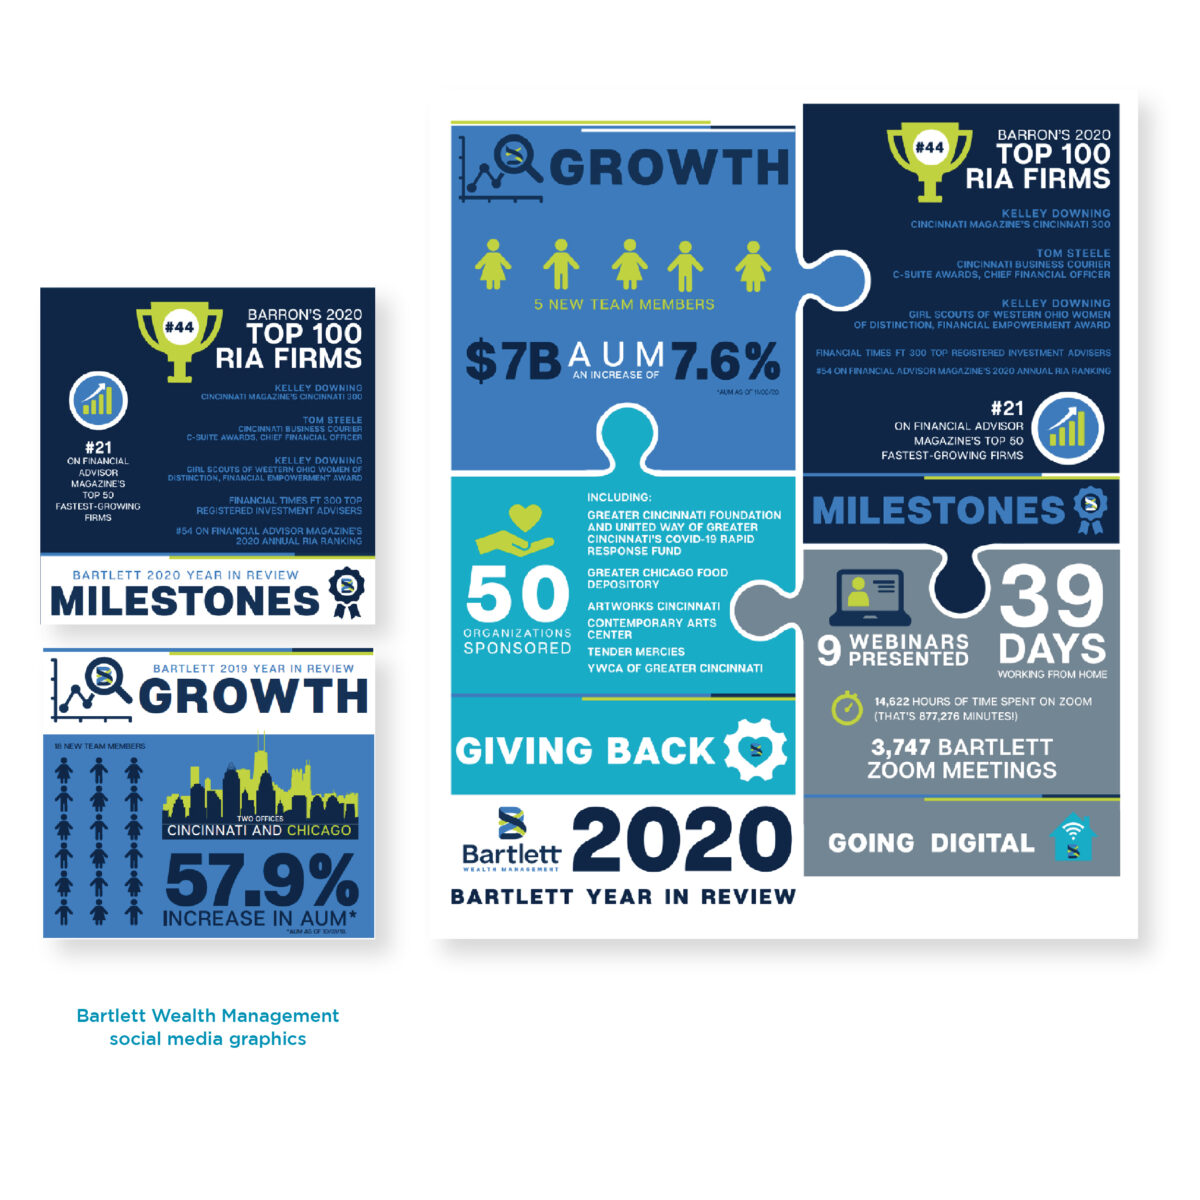 collection of infographic examples